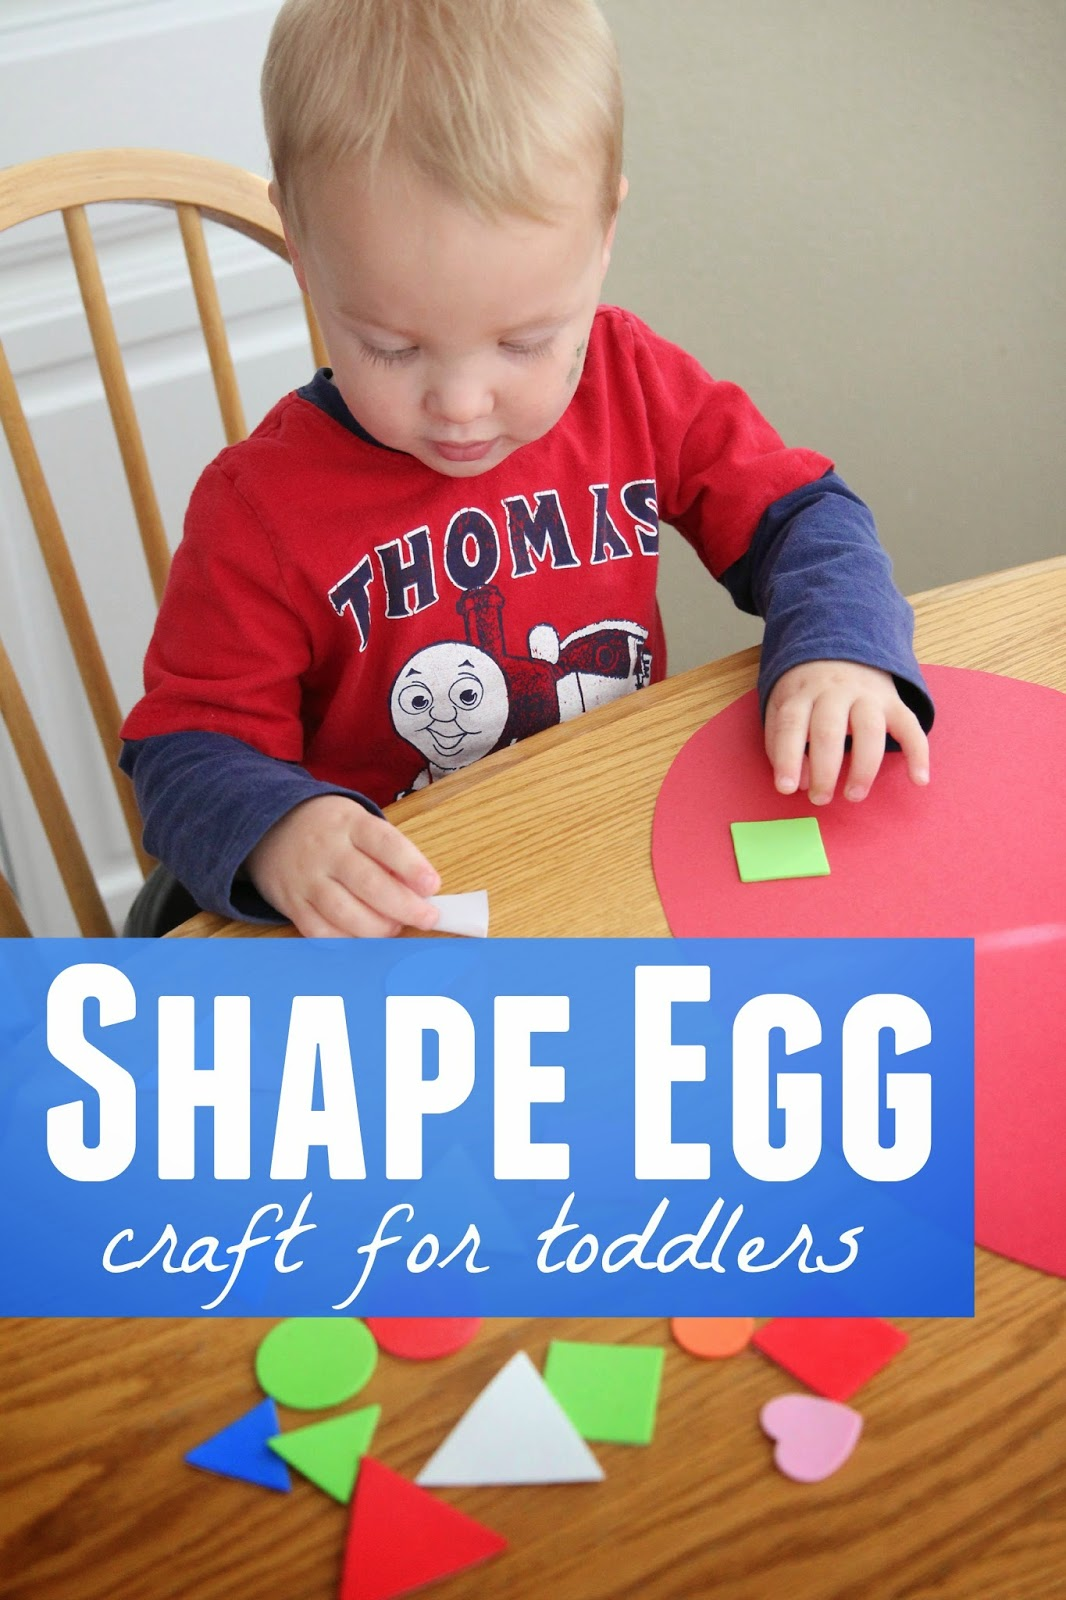 Toddler Approved Shape Egg Craft For Toddlers